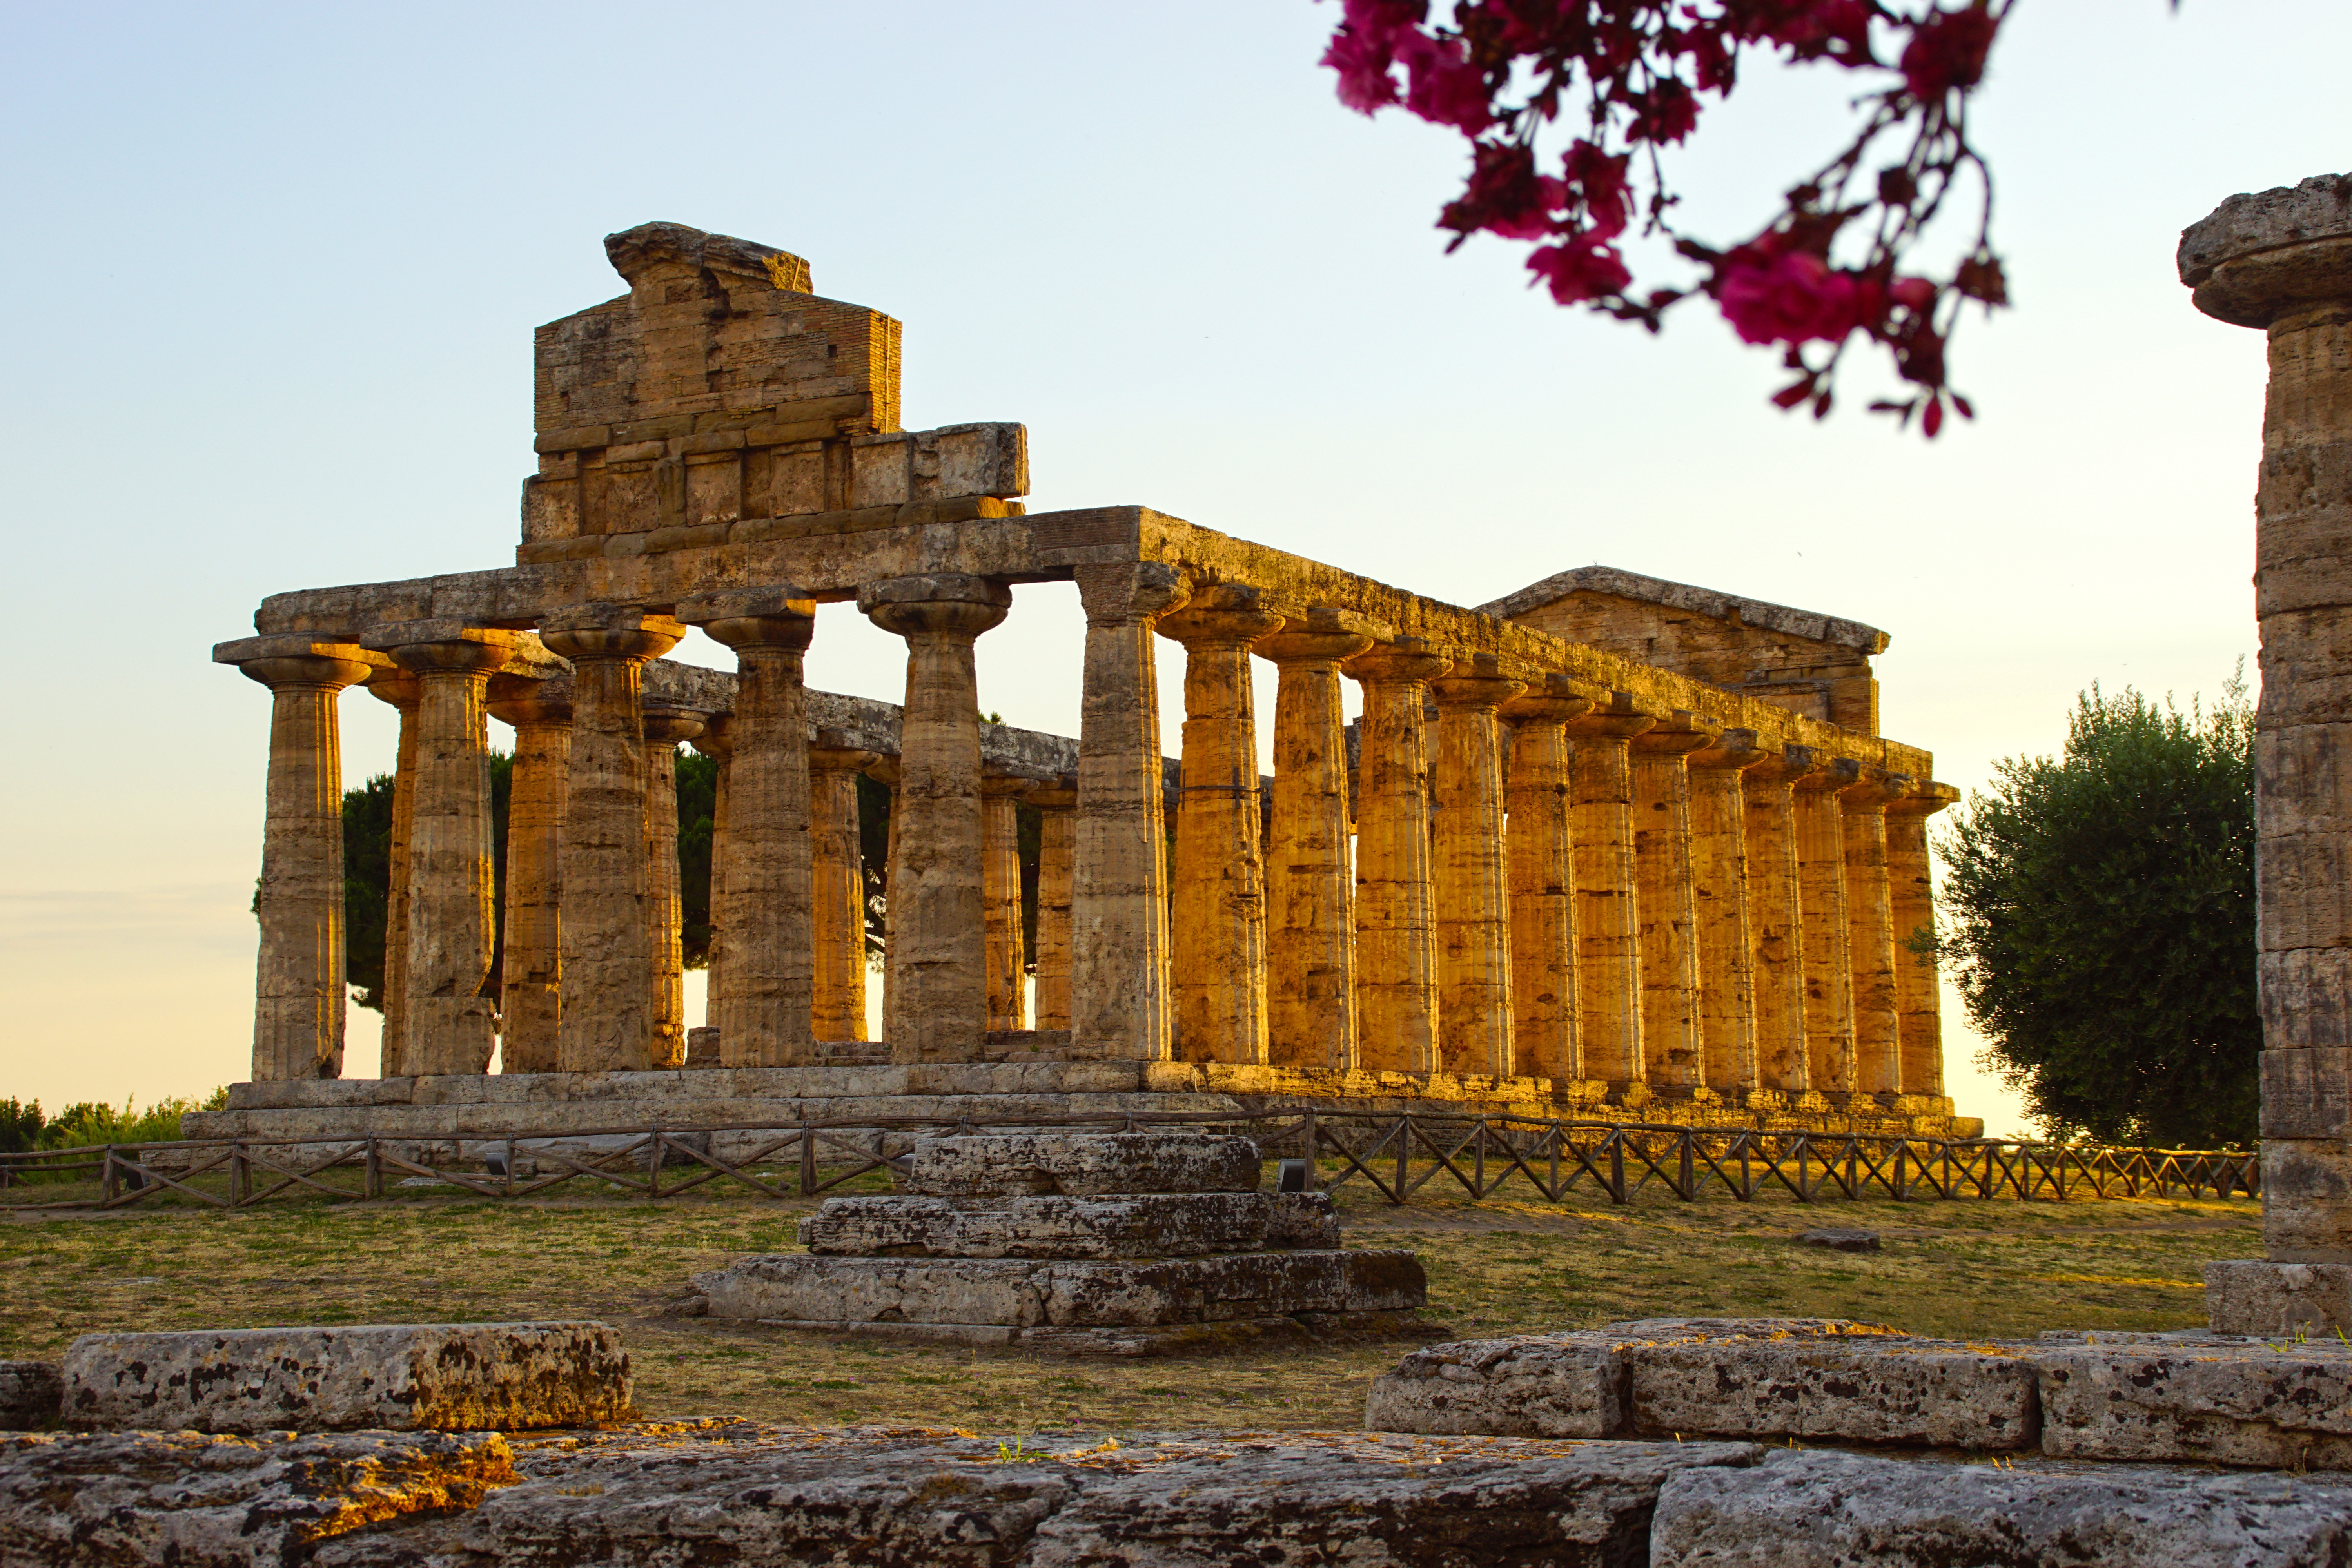 Enchanting Southern Italy, Temple of Athena, Paestum, Italy